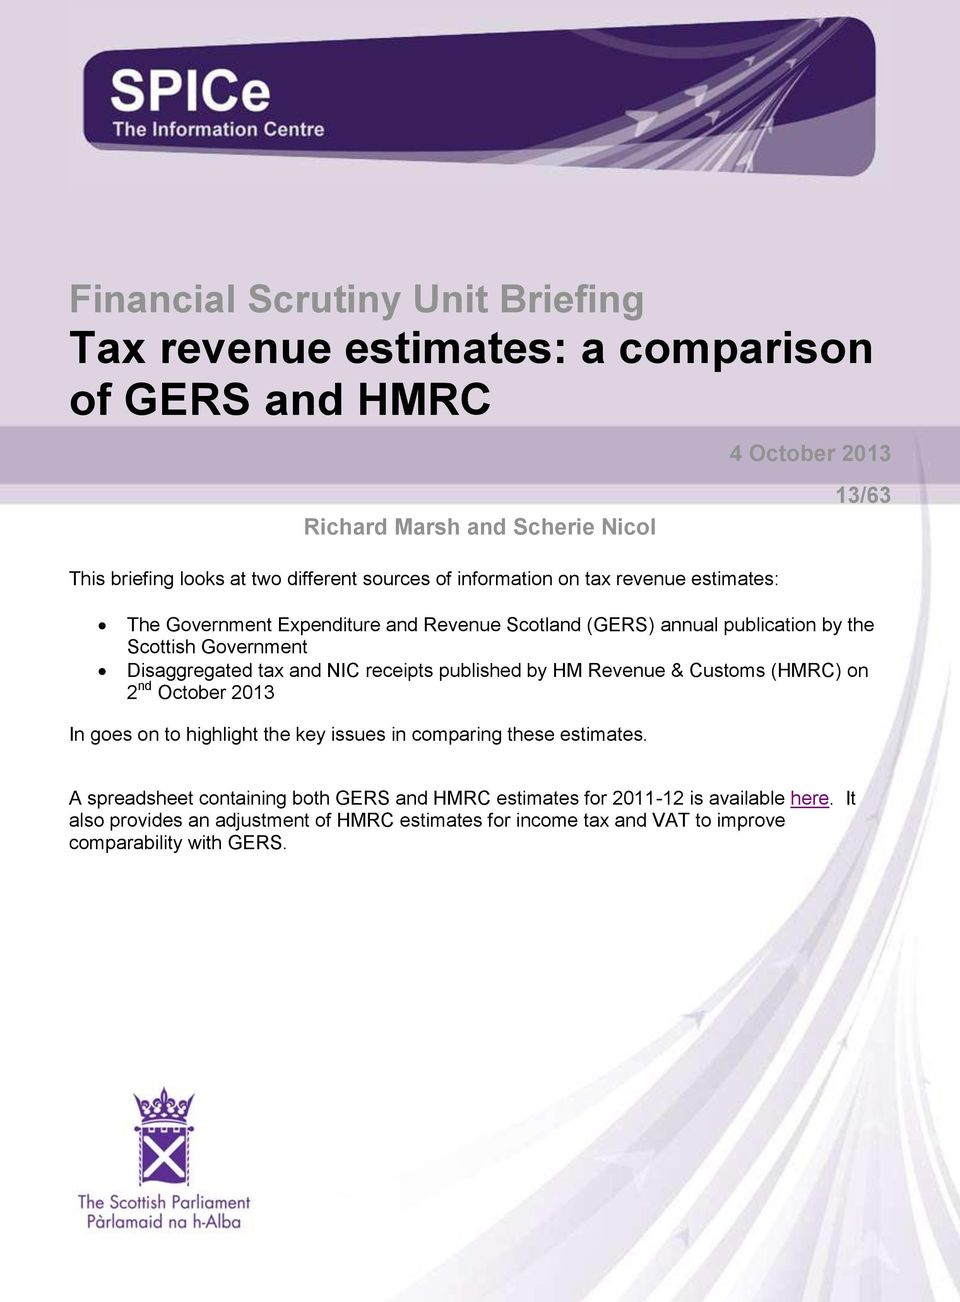 revenue estimates: 4 October 2013 13/63 The Government Expenditure and Revenue Scotland (GERS) annual publication by the Scottish Government Disaggregated tax and NIC receipts published by